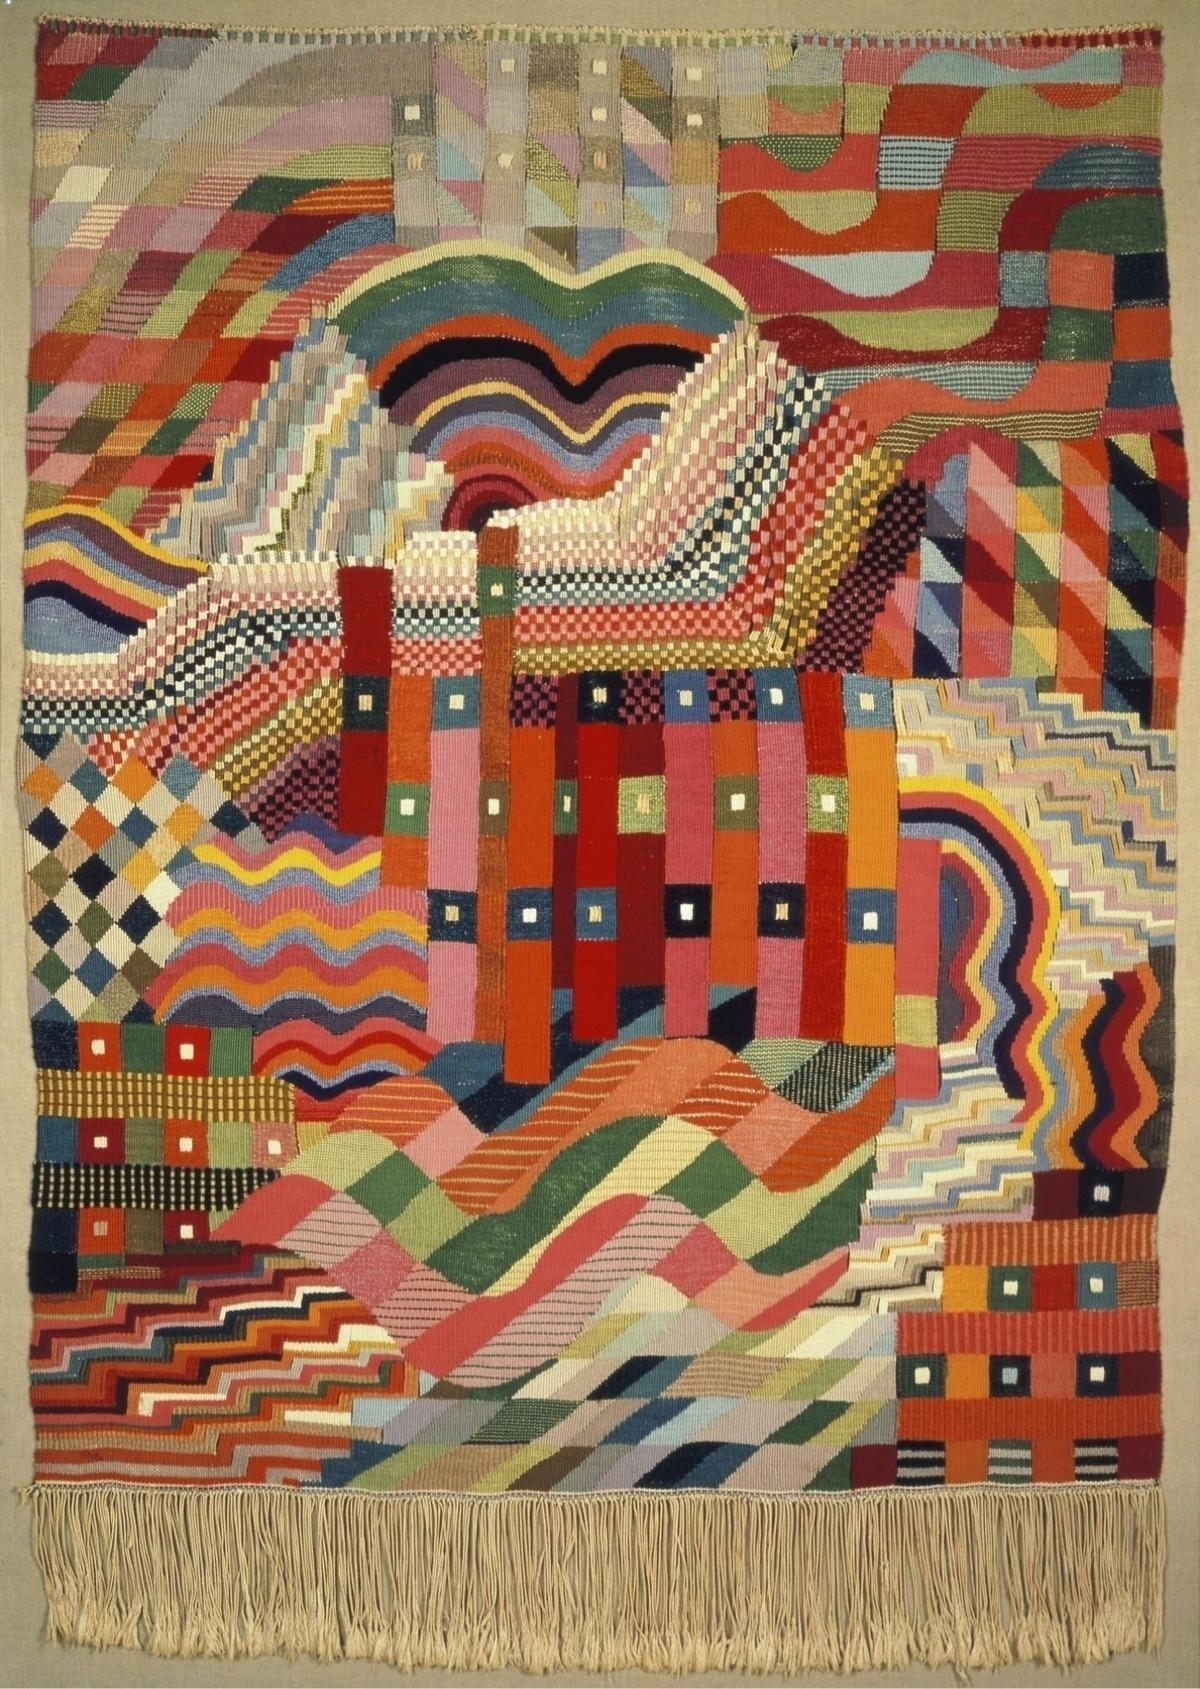 design Gunta produced 1926 - Tapestry - bauhaus-movement | ello